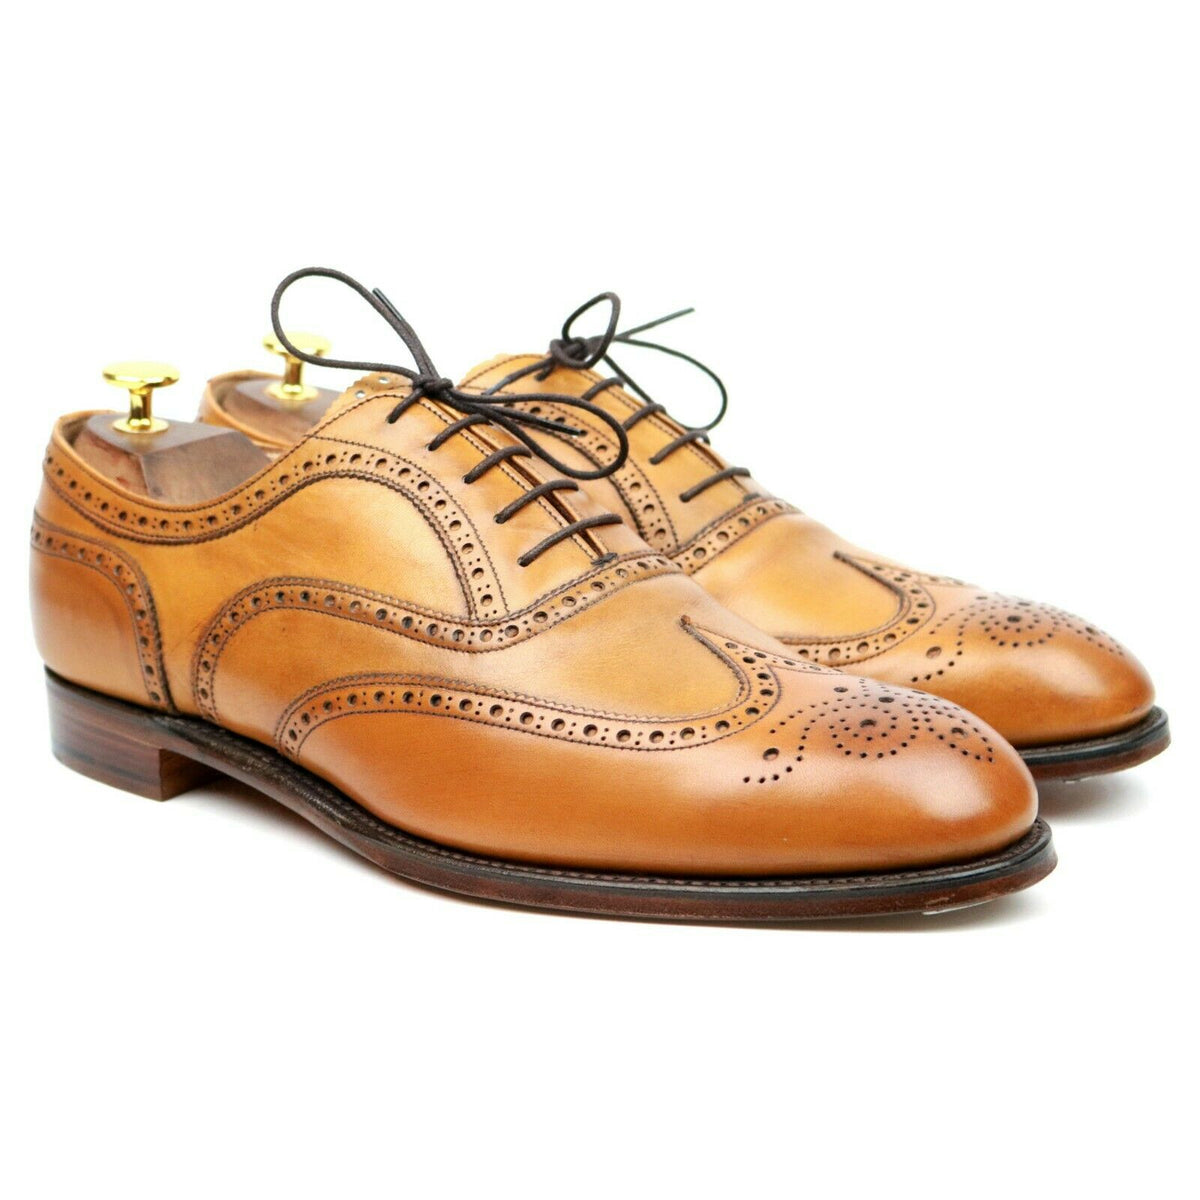 Cheaney 'Arthur III' Tan Brown Leather Brogues UK 10 F